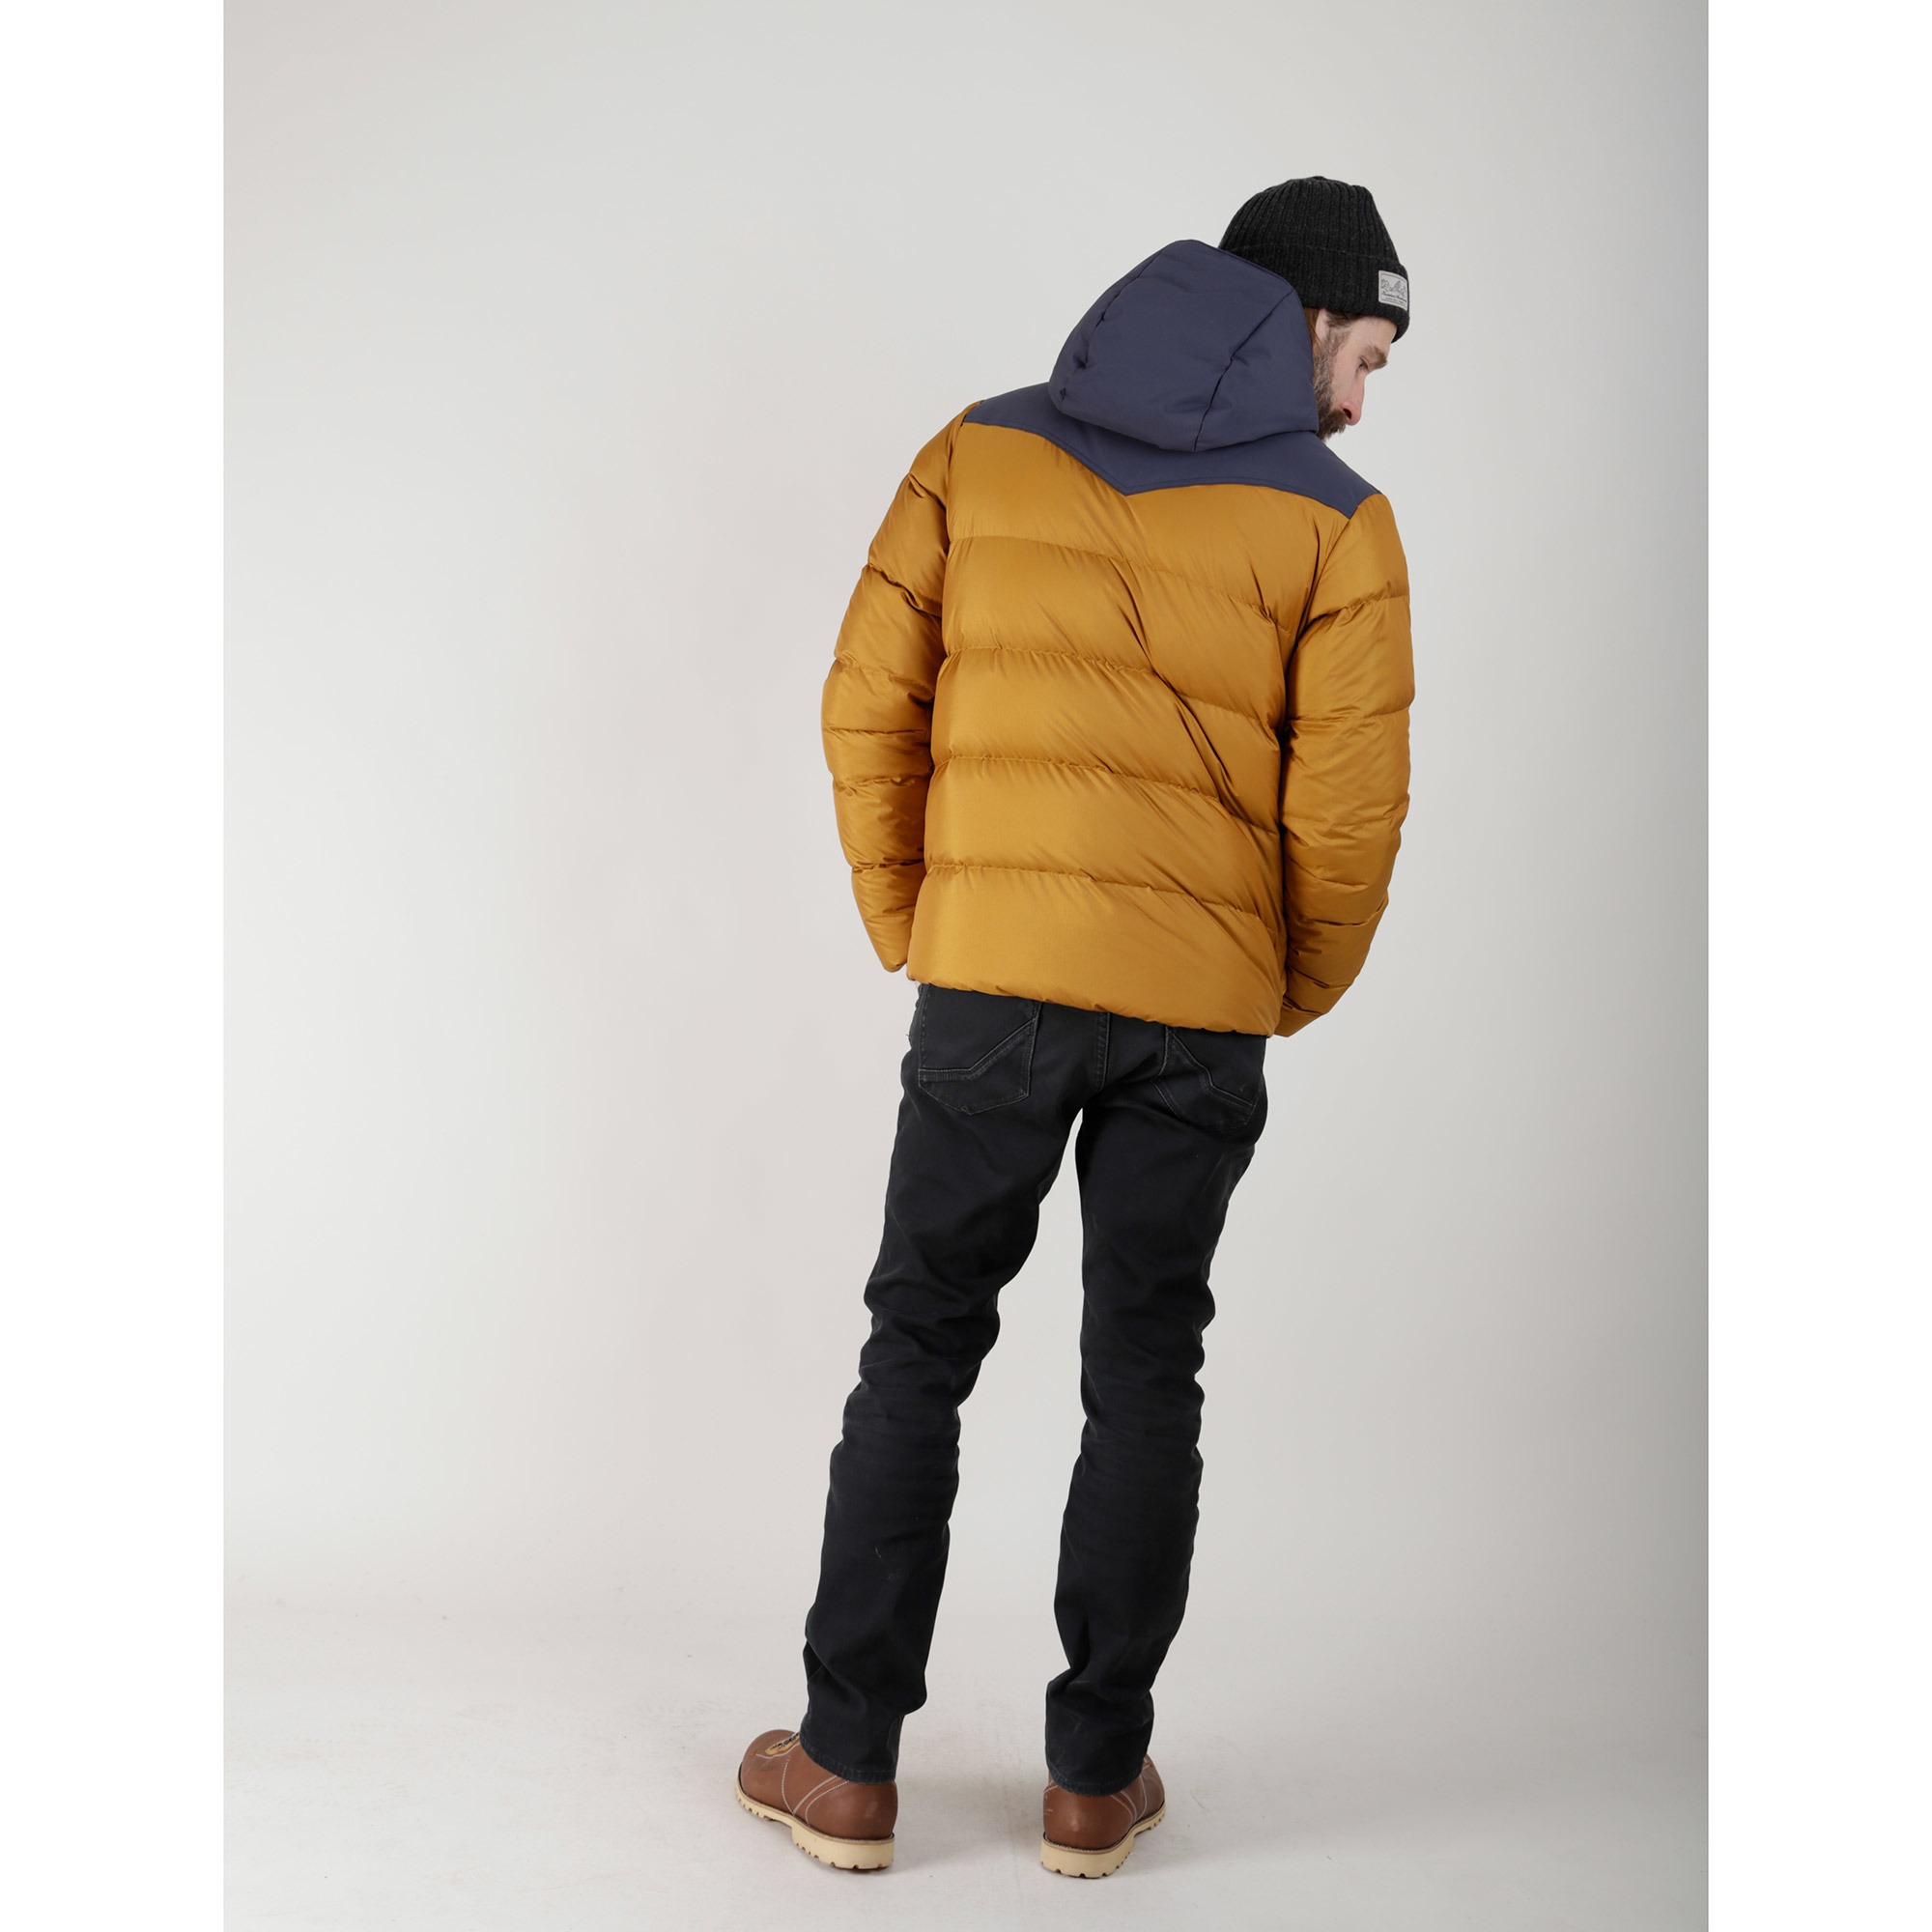 Powderhorn Jackson Shot 7 Jacket